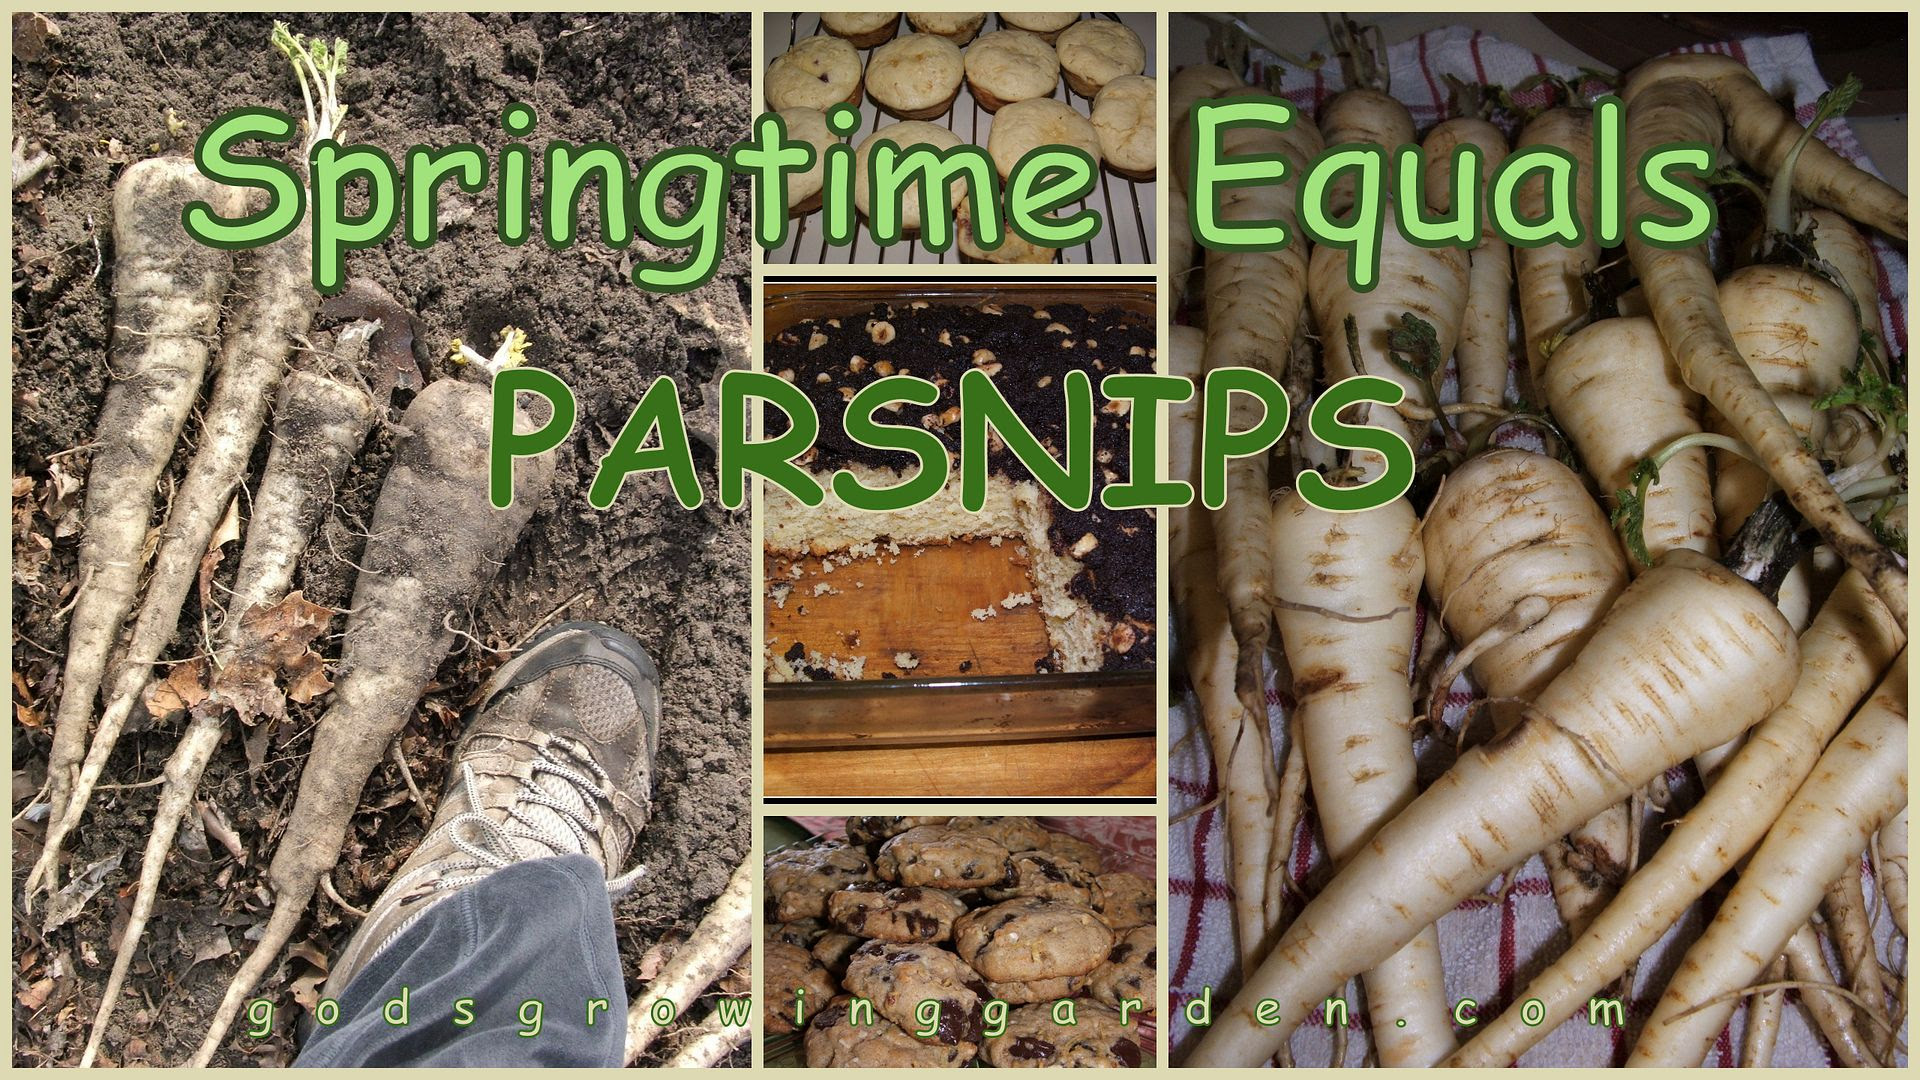 Parsnips by Angie Ouellette-Tower for godsgrowinggarden.com photo 2013-03-31_zpsa9b2b83e.jpg